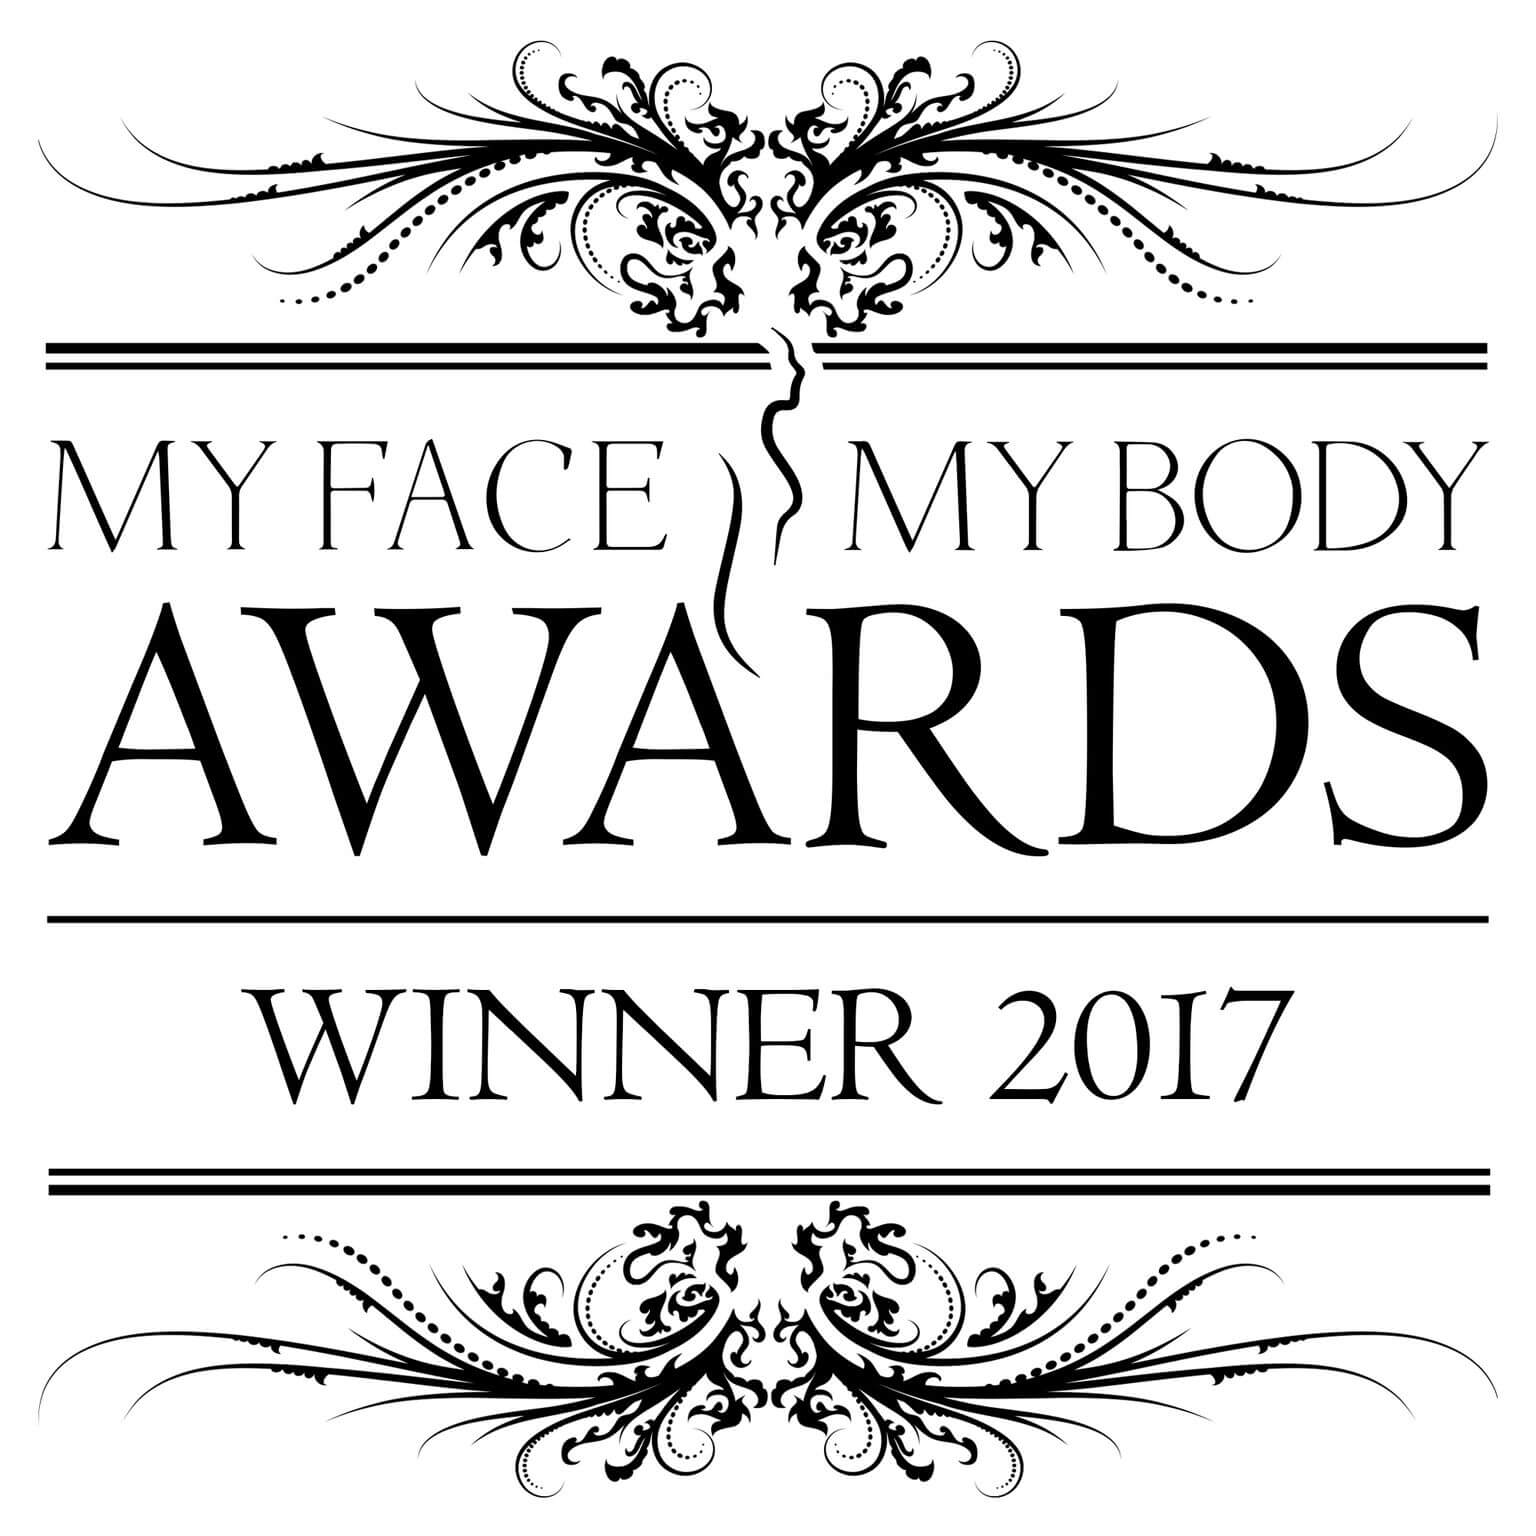 MyFaceMyBody Winner 2017-Black_On_White_preview